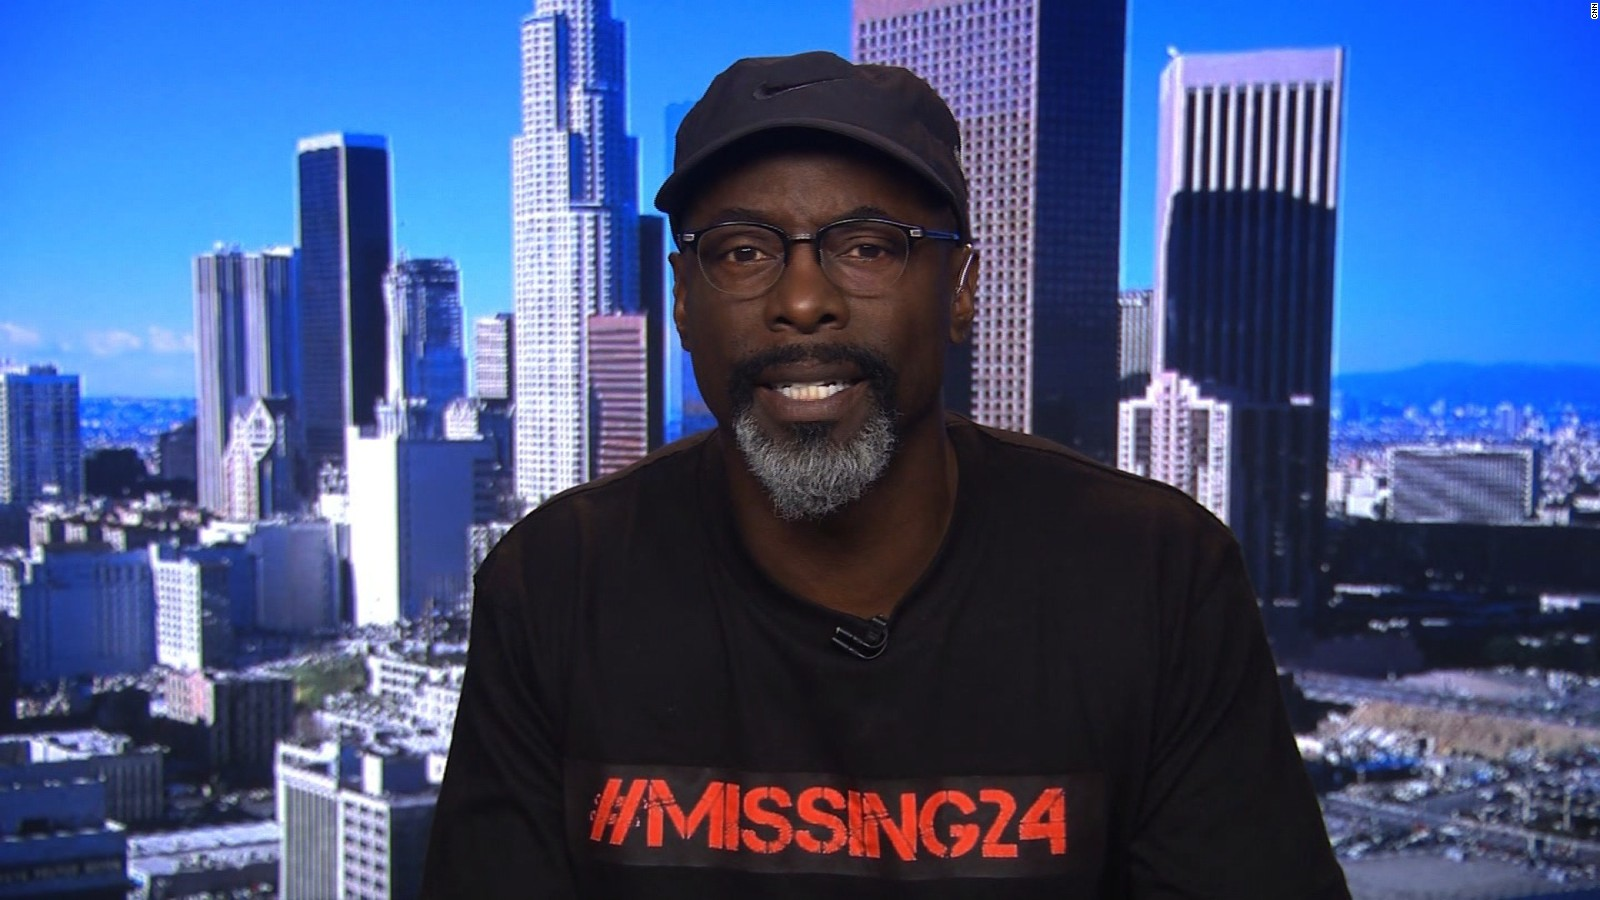 US actor proposes fighting police brutality